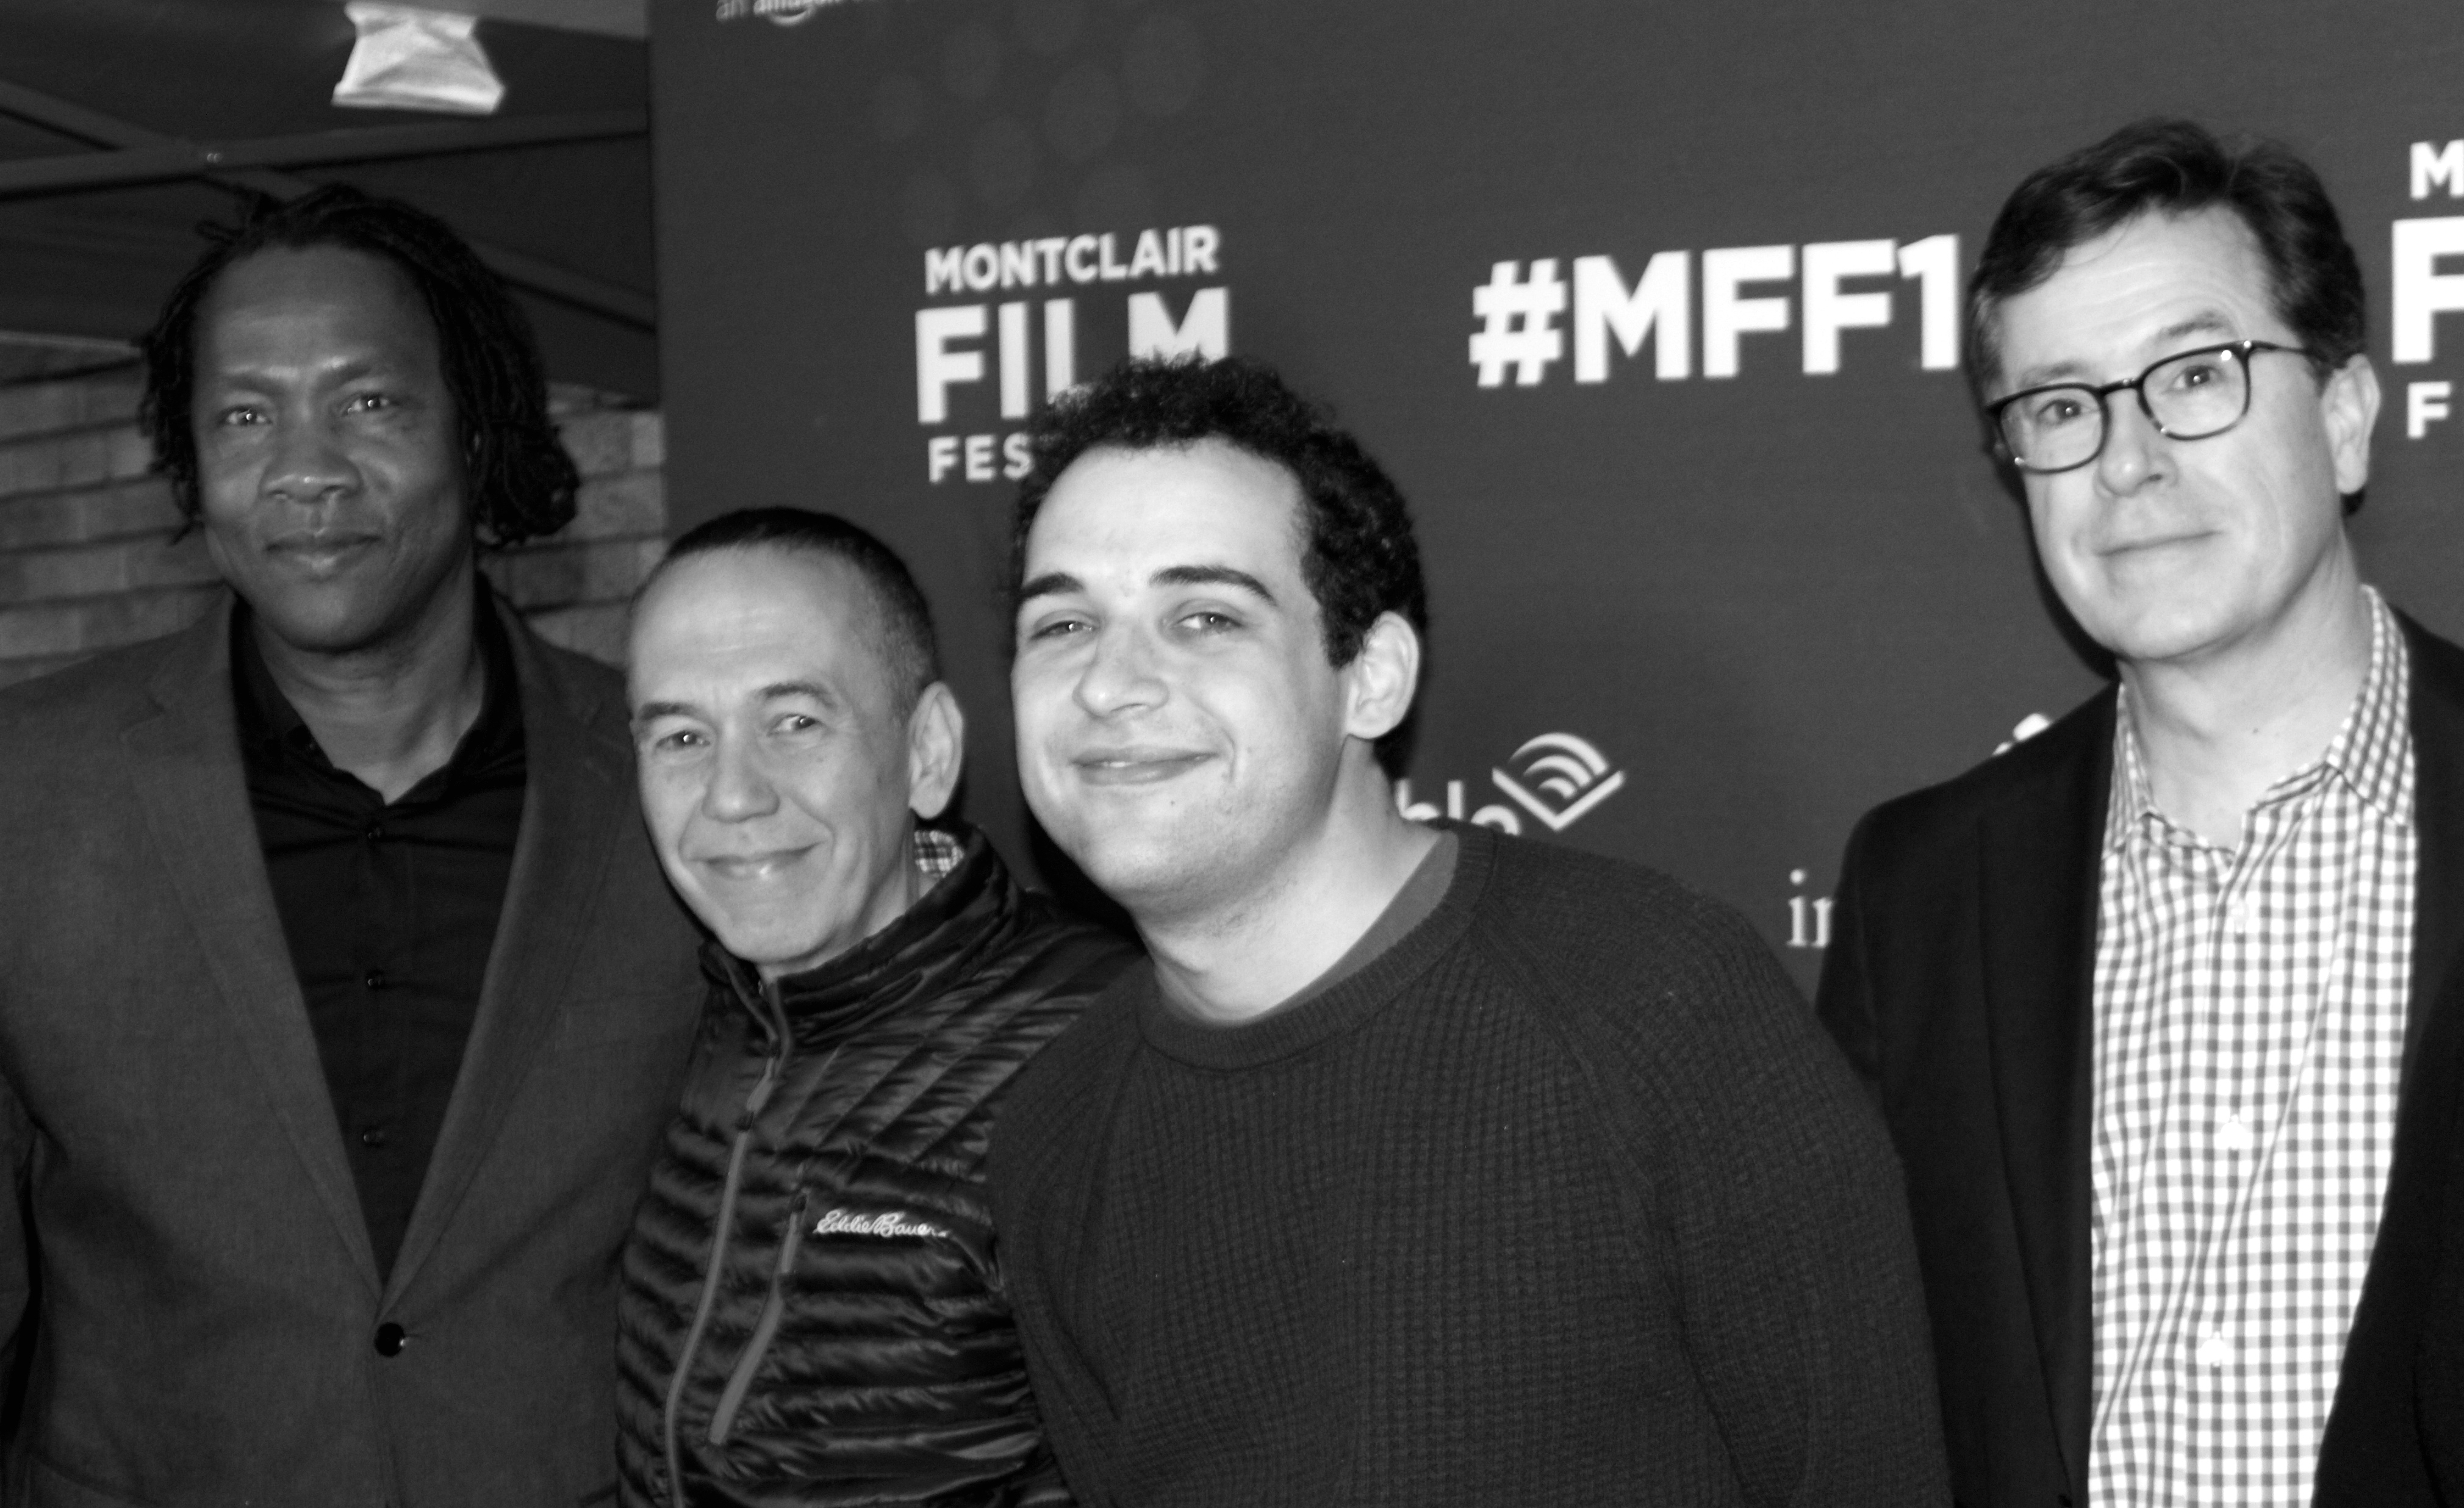 1de0008041f43c2f7869_Roger_williams_gilbert_gottfried_owen_suskind_and_colberts_by_Cindy_Pereira_for_Tap_copy.jpg